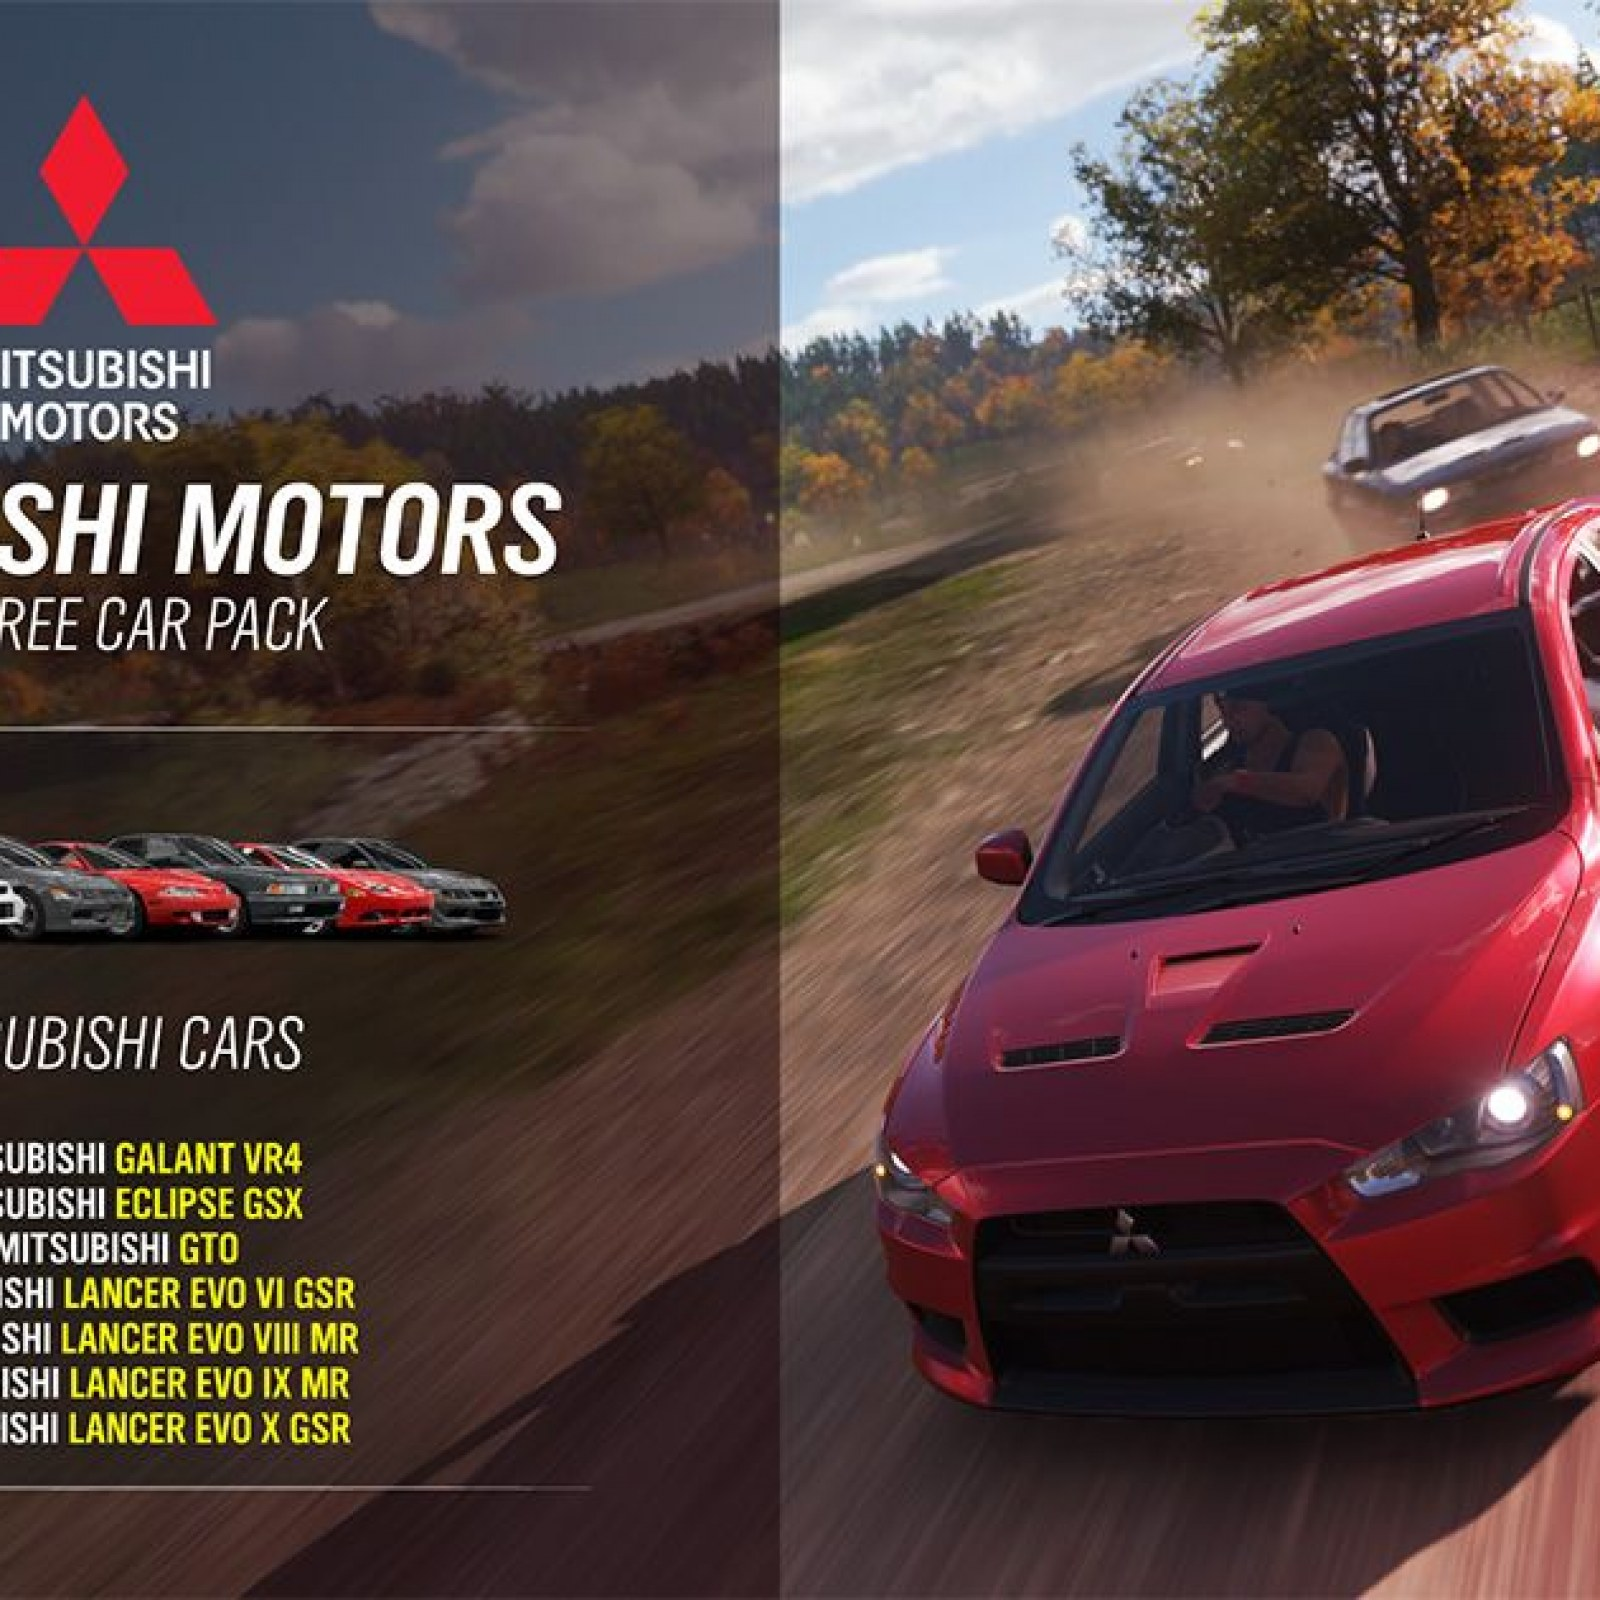 Forza Horizon 4' Update: Free Mitsubishi Car Pack and More